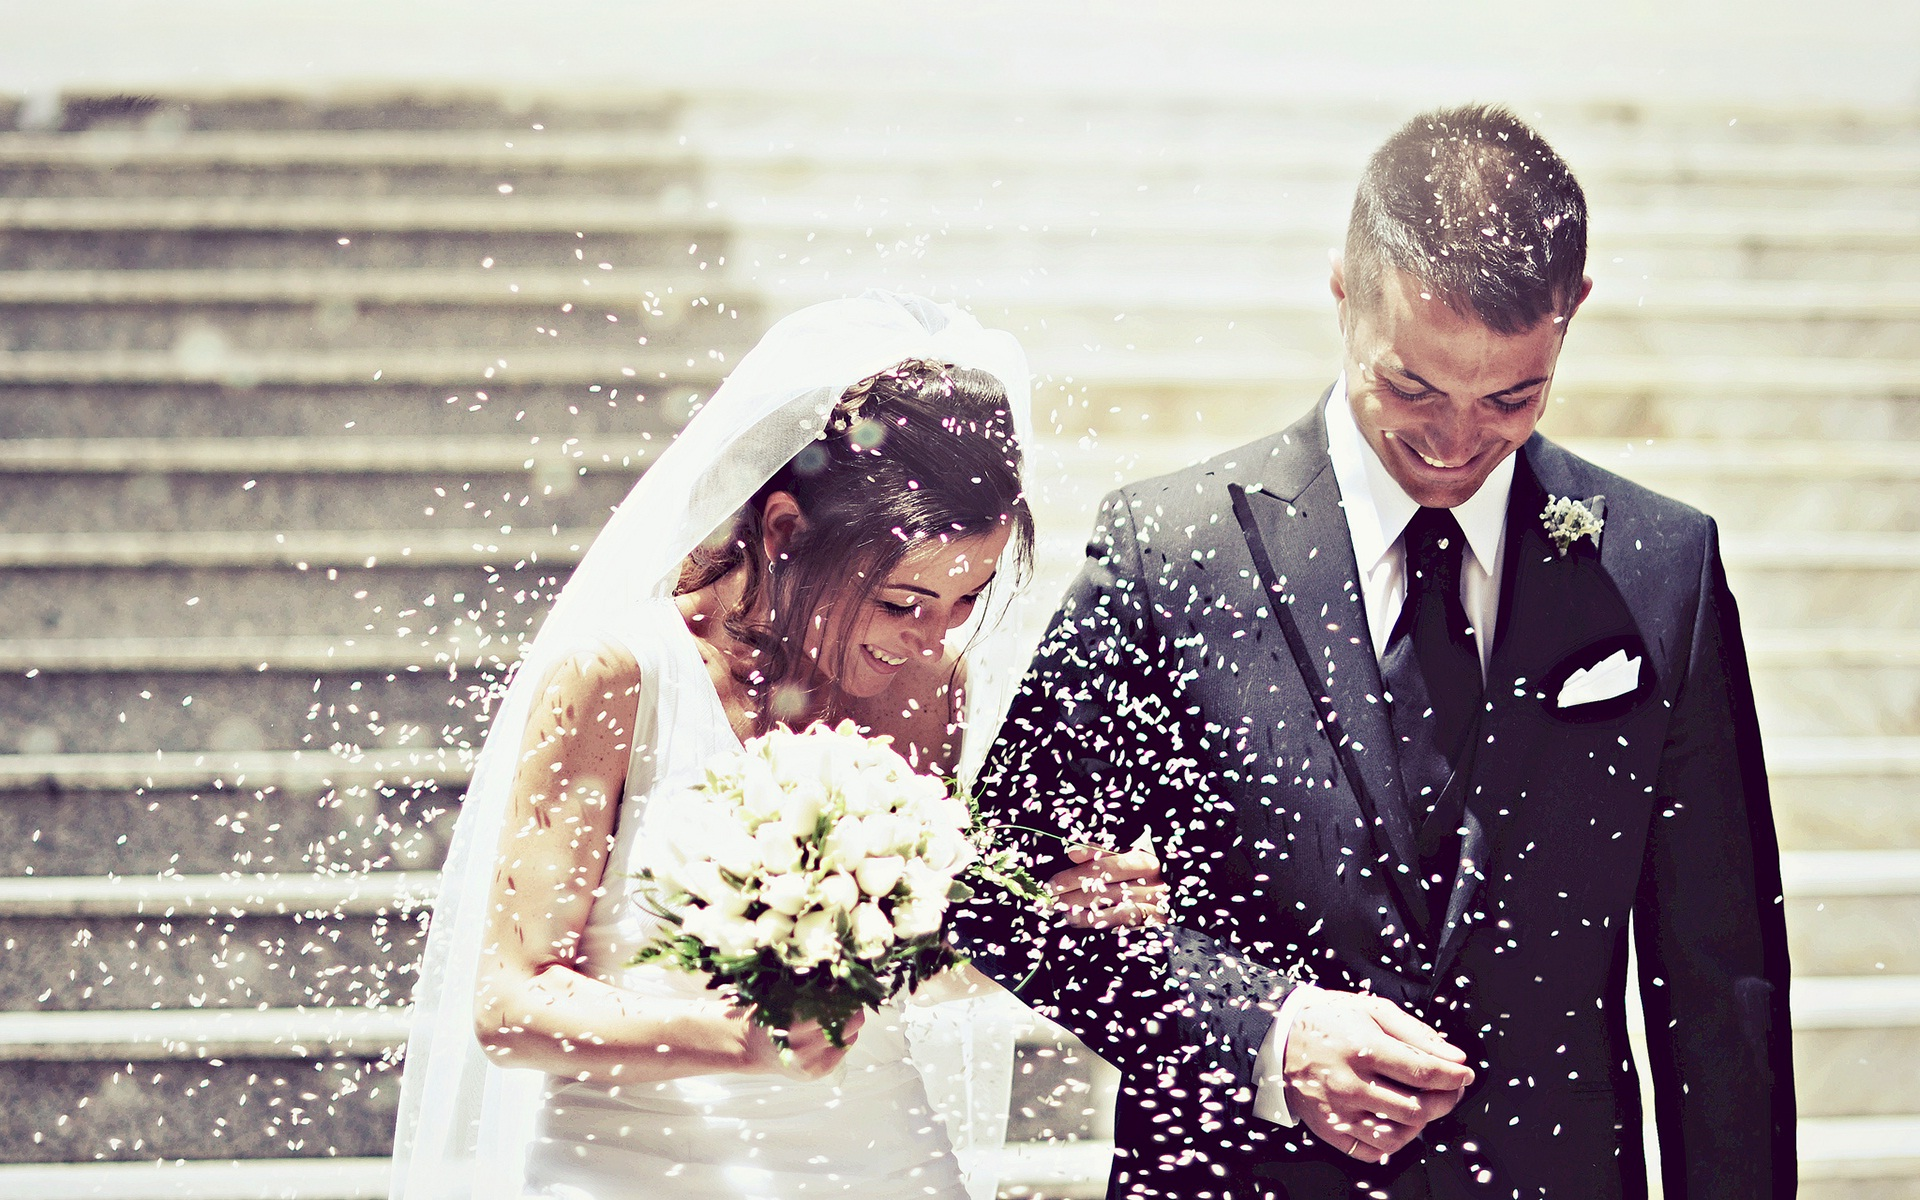 How to Hire Your Ideal Wedding Planner? 4 Tips